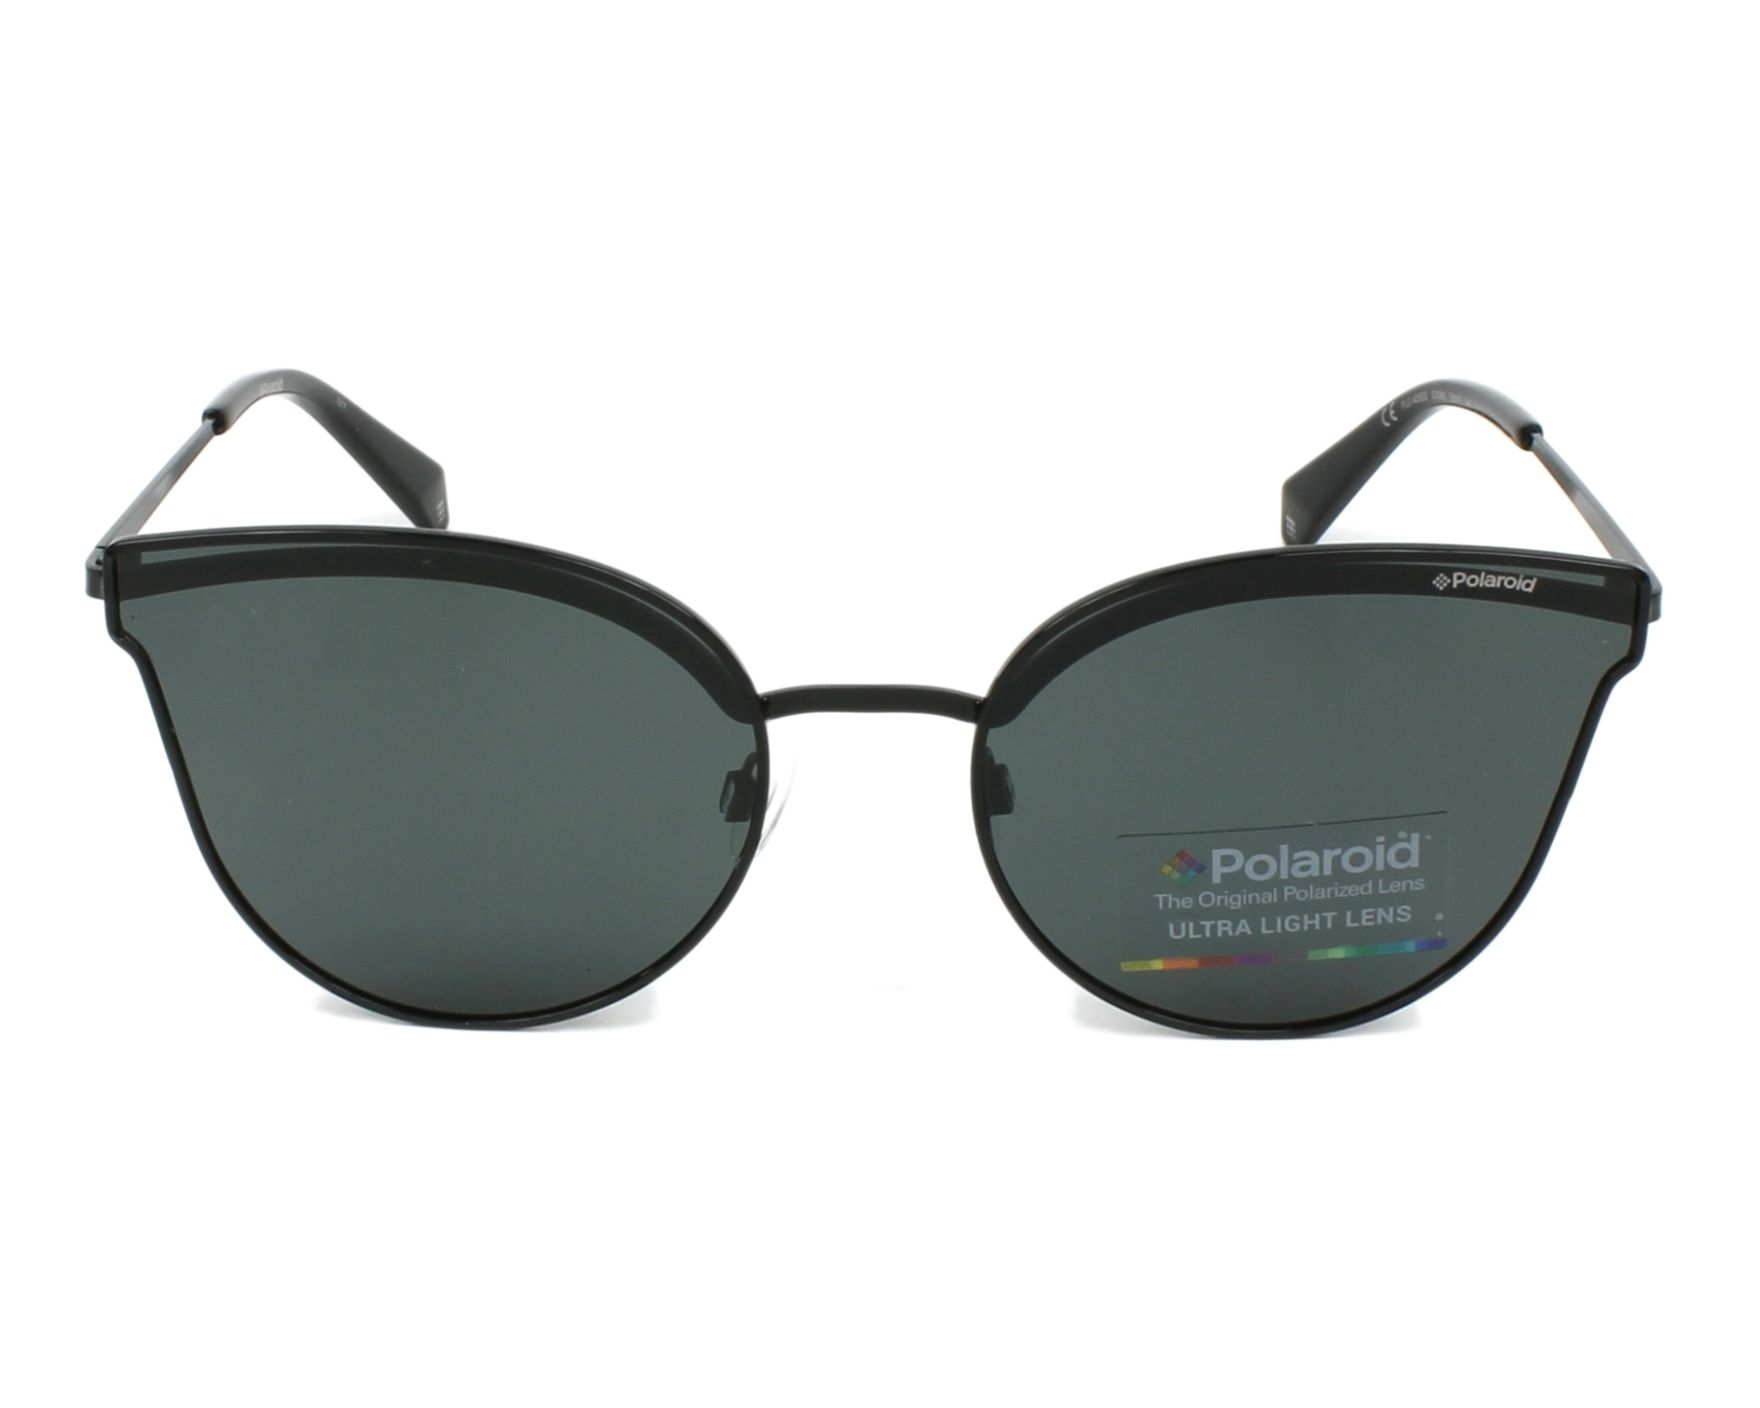 81e7608df3 thumbnail Sunglasses Polaroid PLD-4056-S 205 M9 - Black Black front view